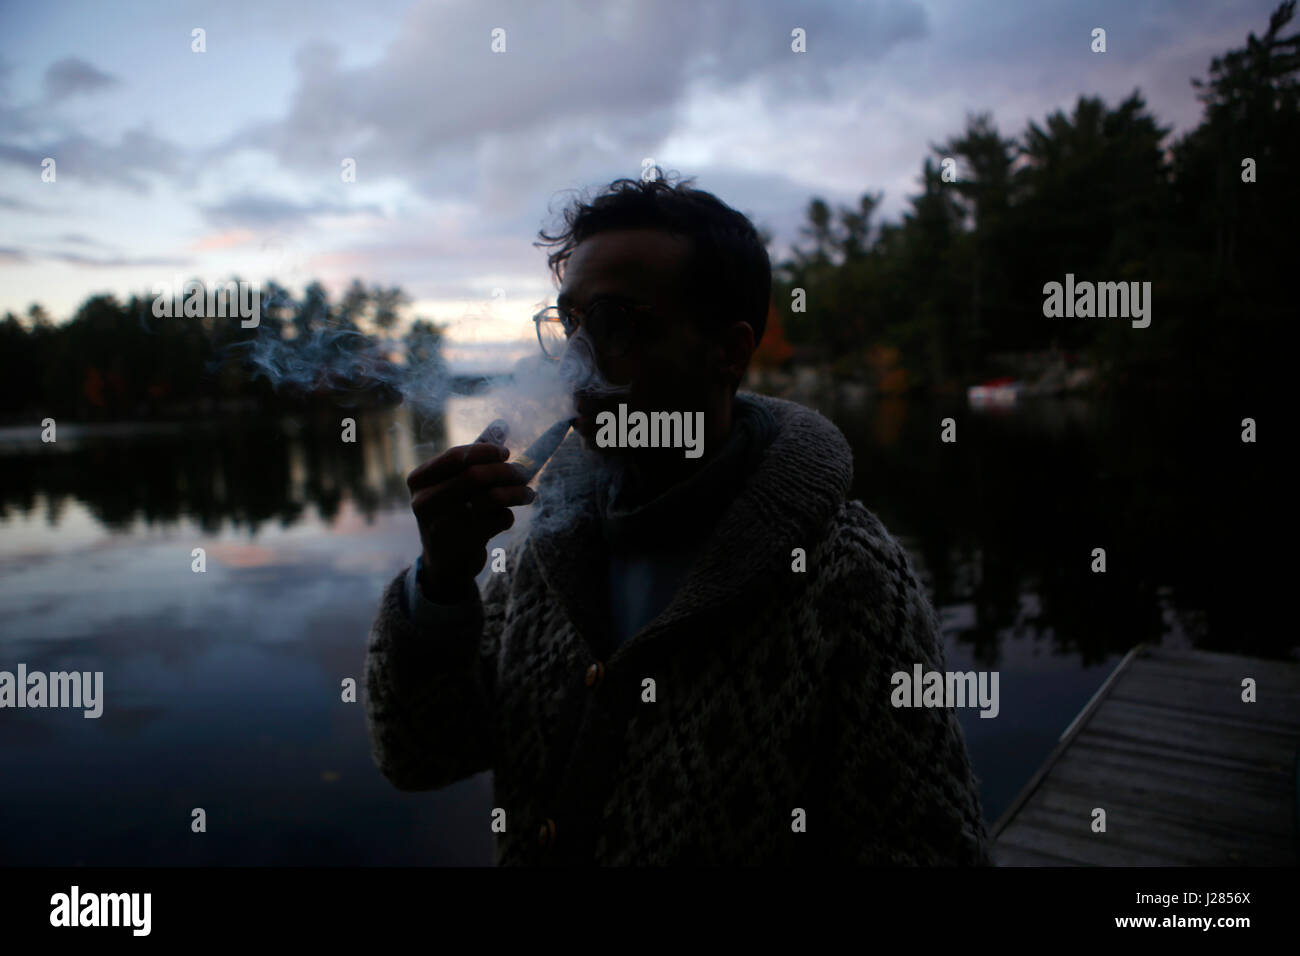 Man smoking with vape while standing on jetty against cloudy sky during sunset - Stock Image